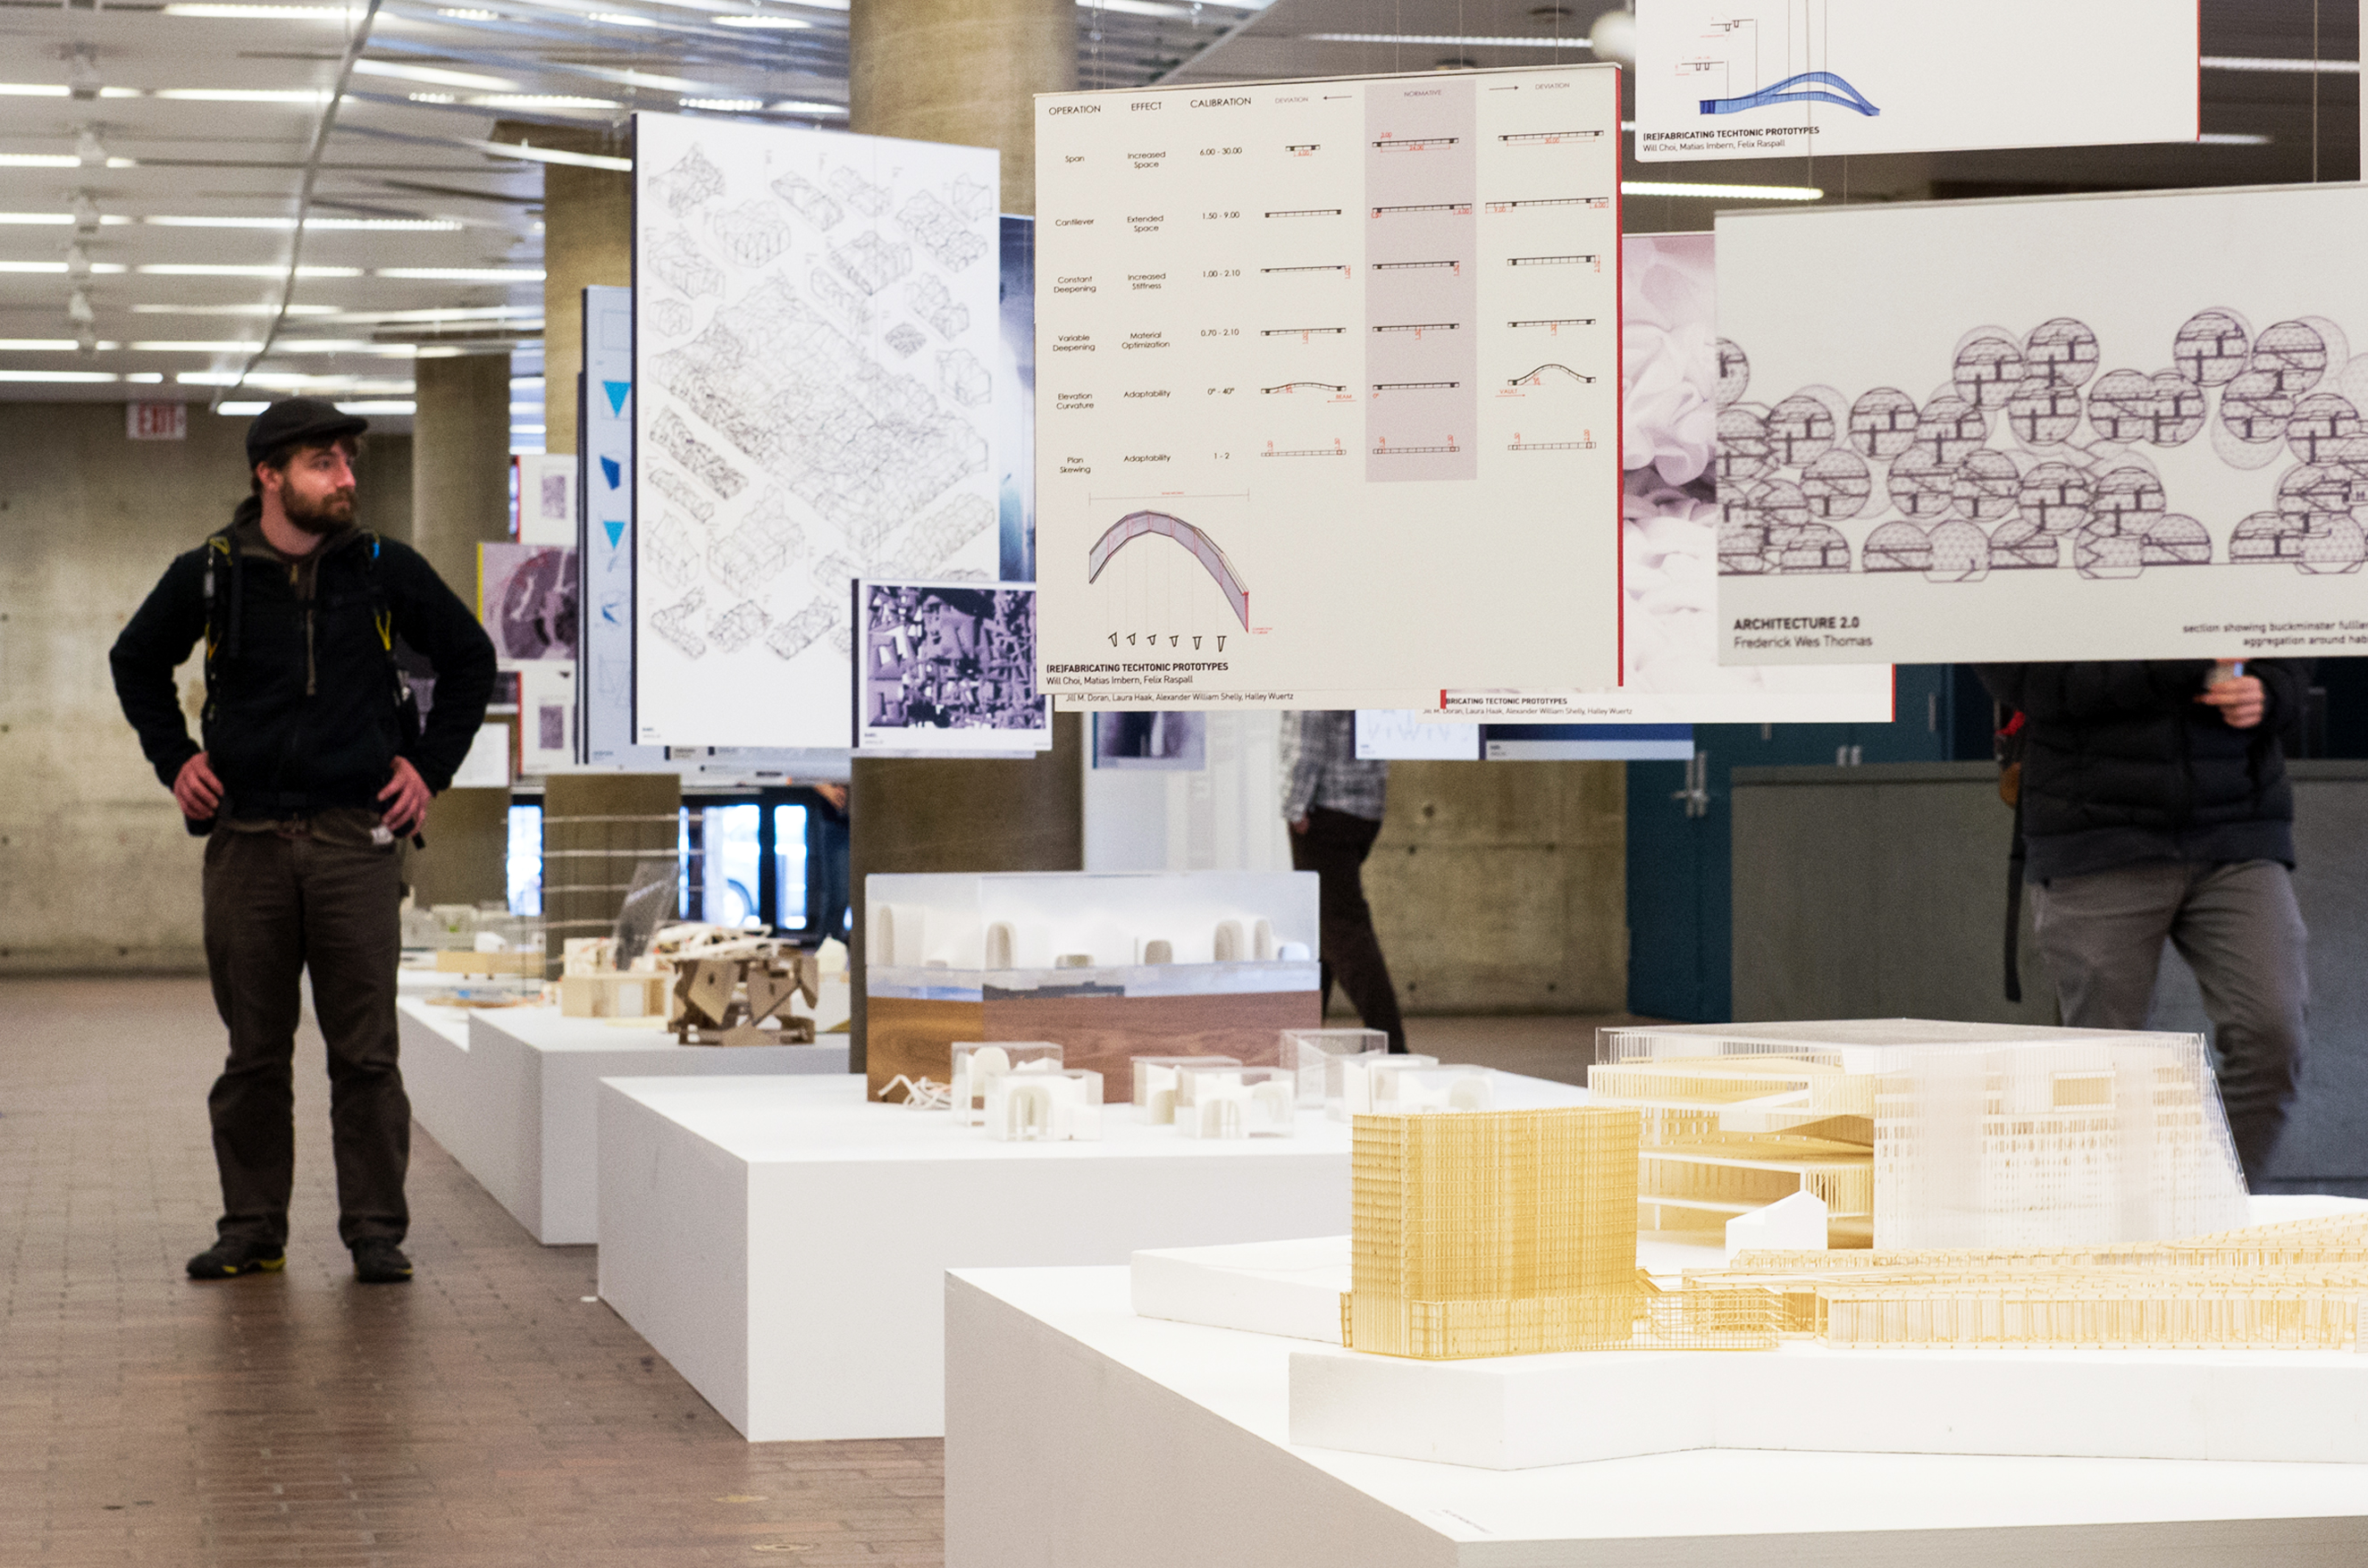 A student passes through a recent exhibition featuring urban planning and design projects